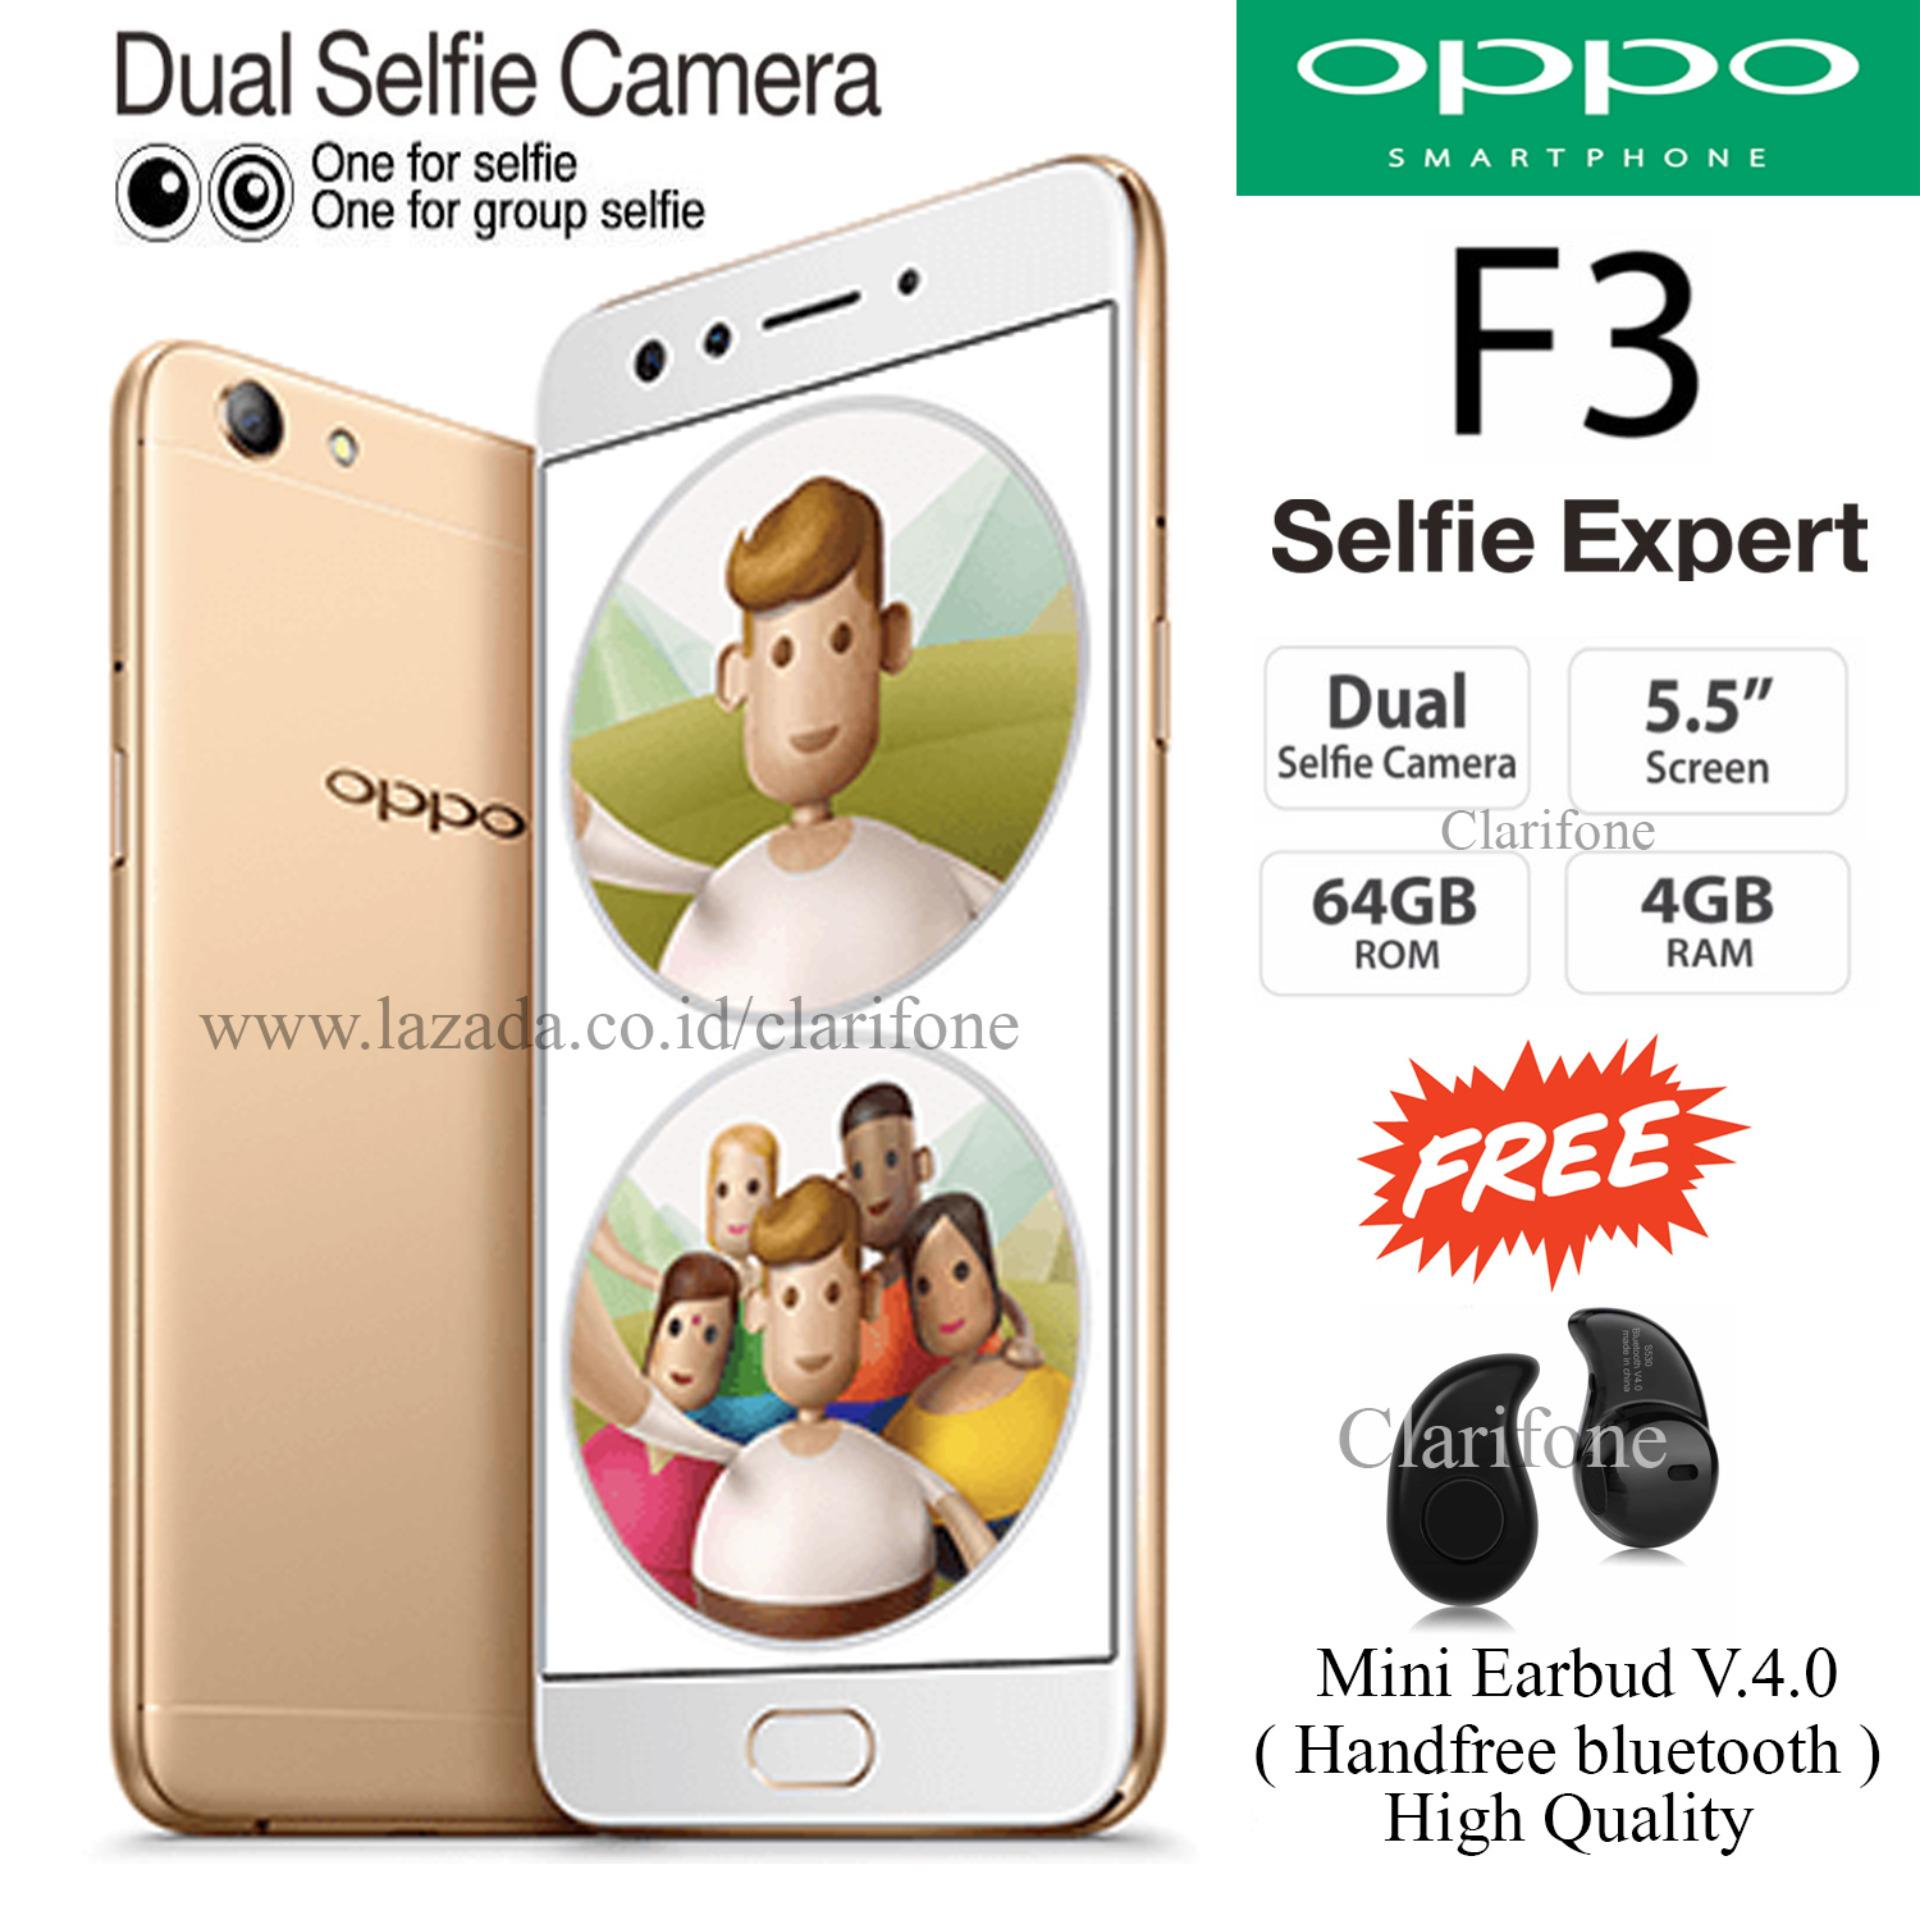 "Exclusive Gift "" Handfree Bluetooth "" Oppo F3 - Selfie Expert - Dual Front Camera - Ram 4GB - Rom 64GB -"